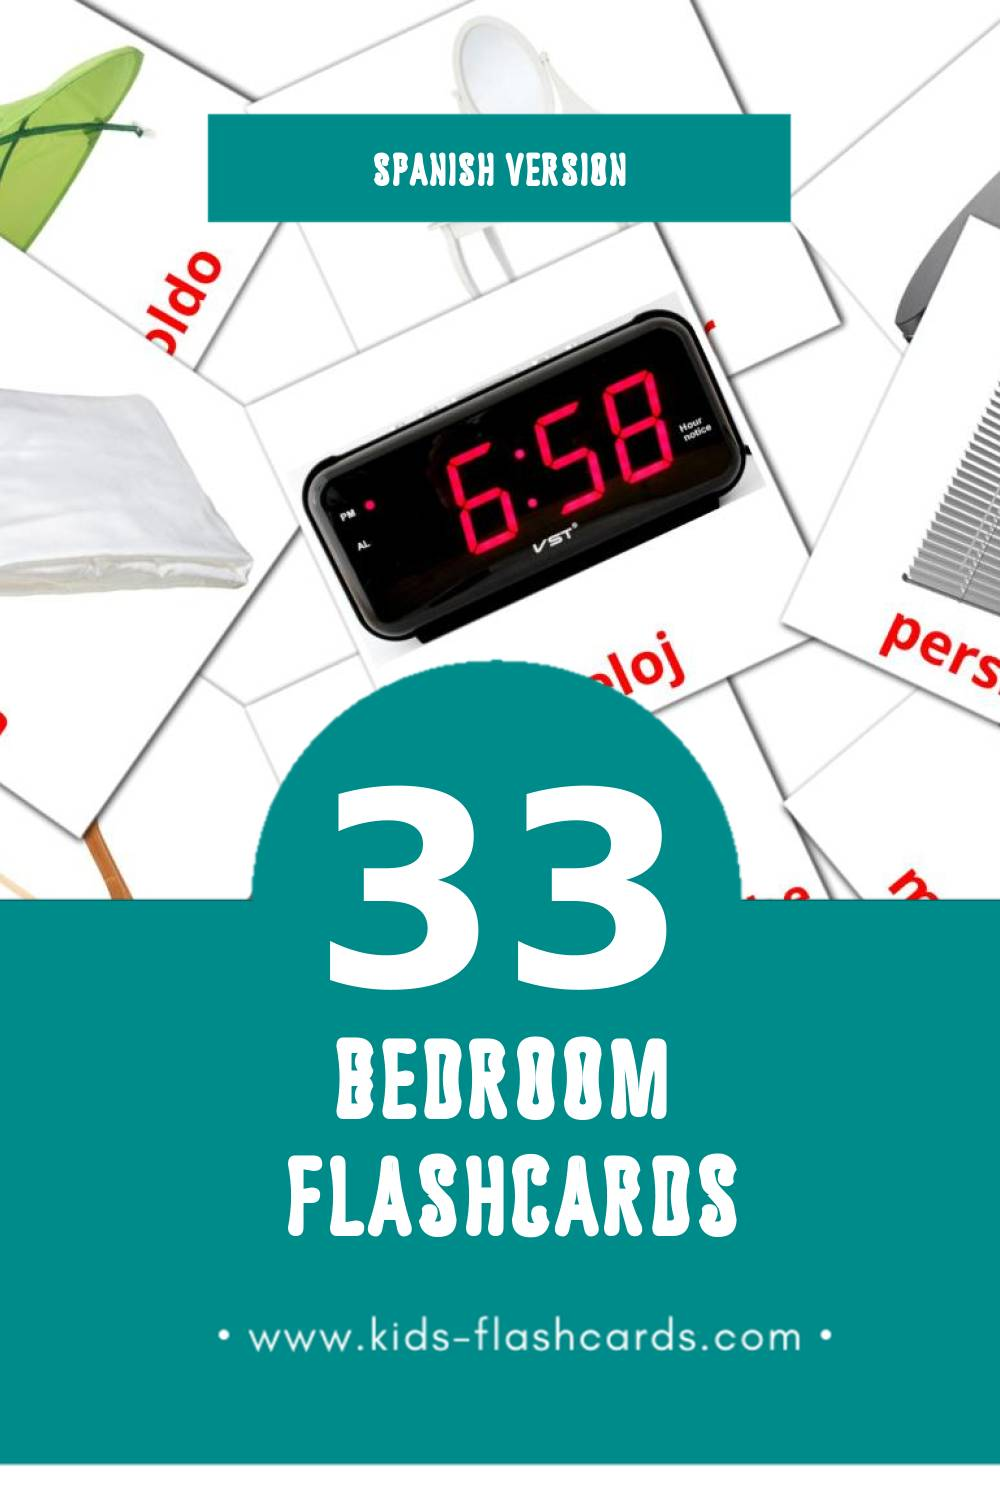 Visual Dormitorio Flashcards for Toddlers (33 cards in Spanish)